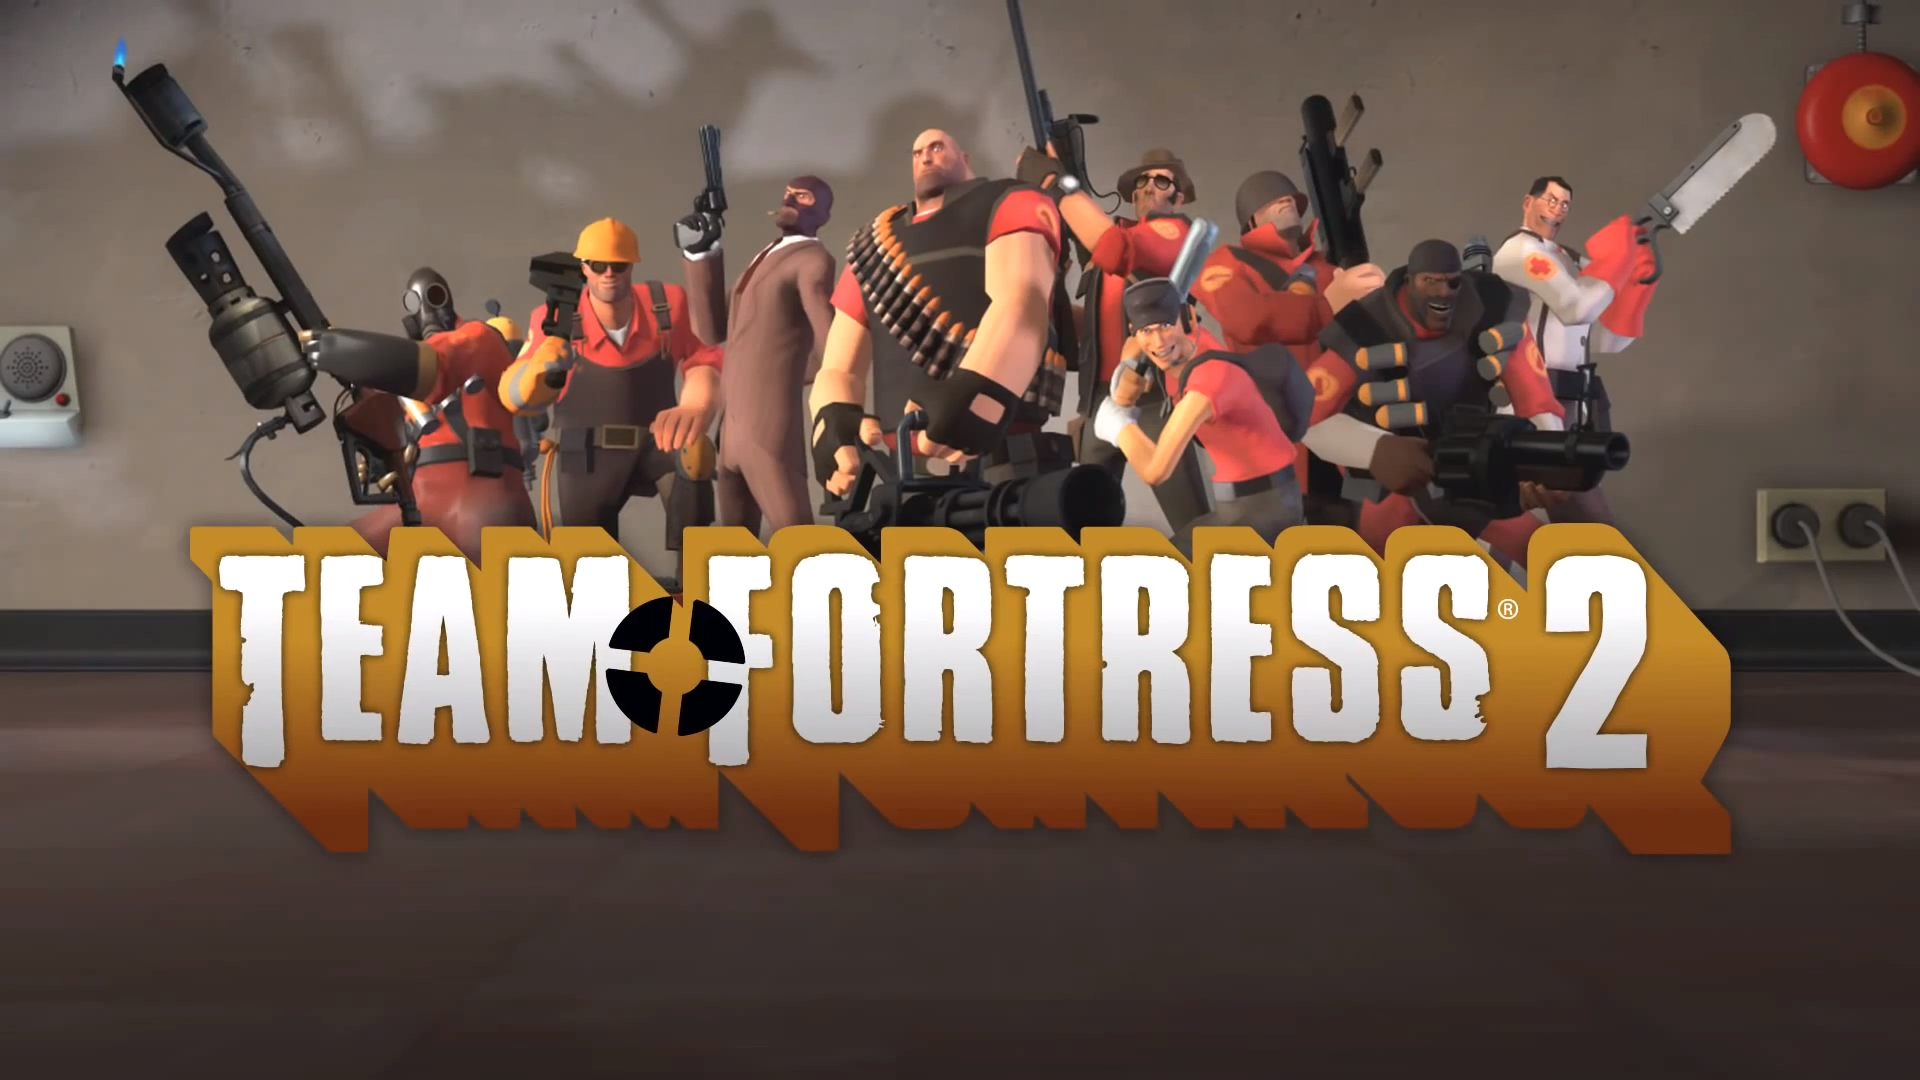 new tf2 wallpapers backgrounds - photo #34